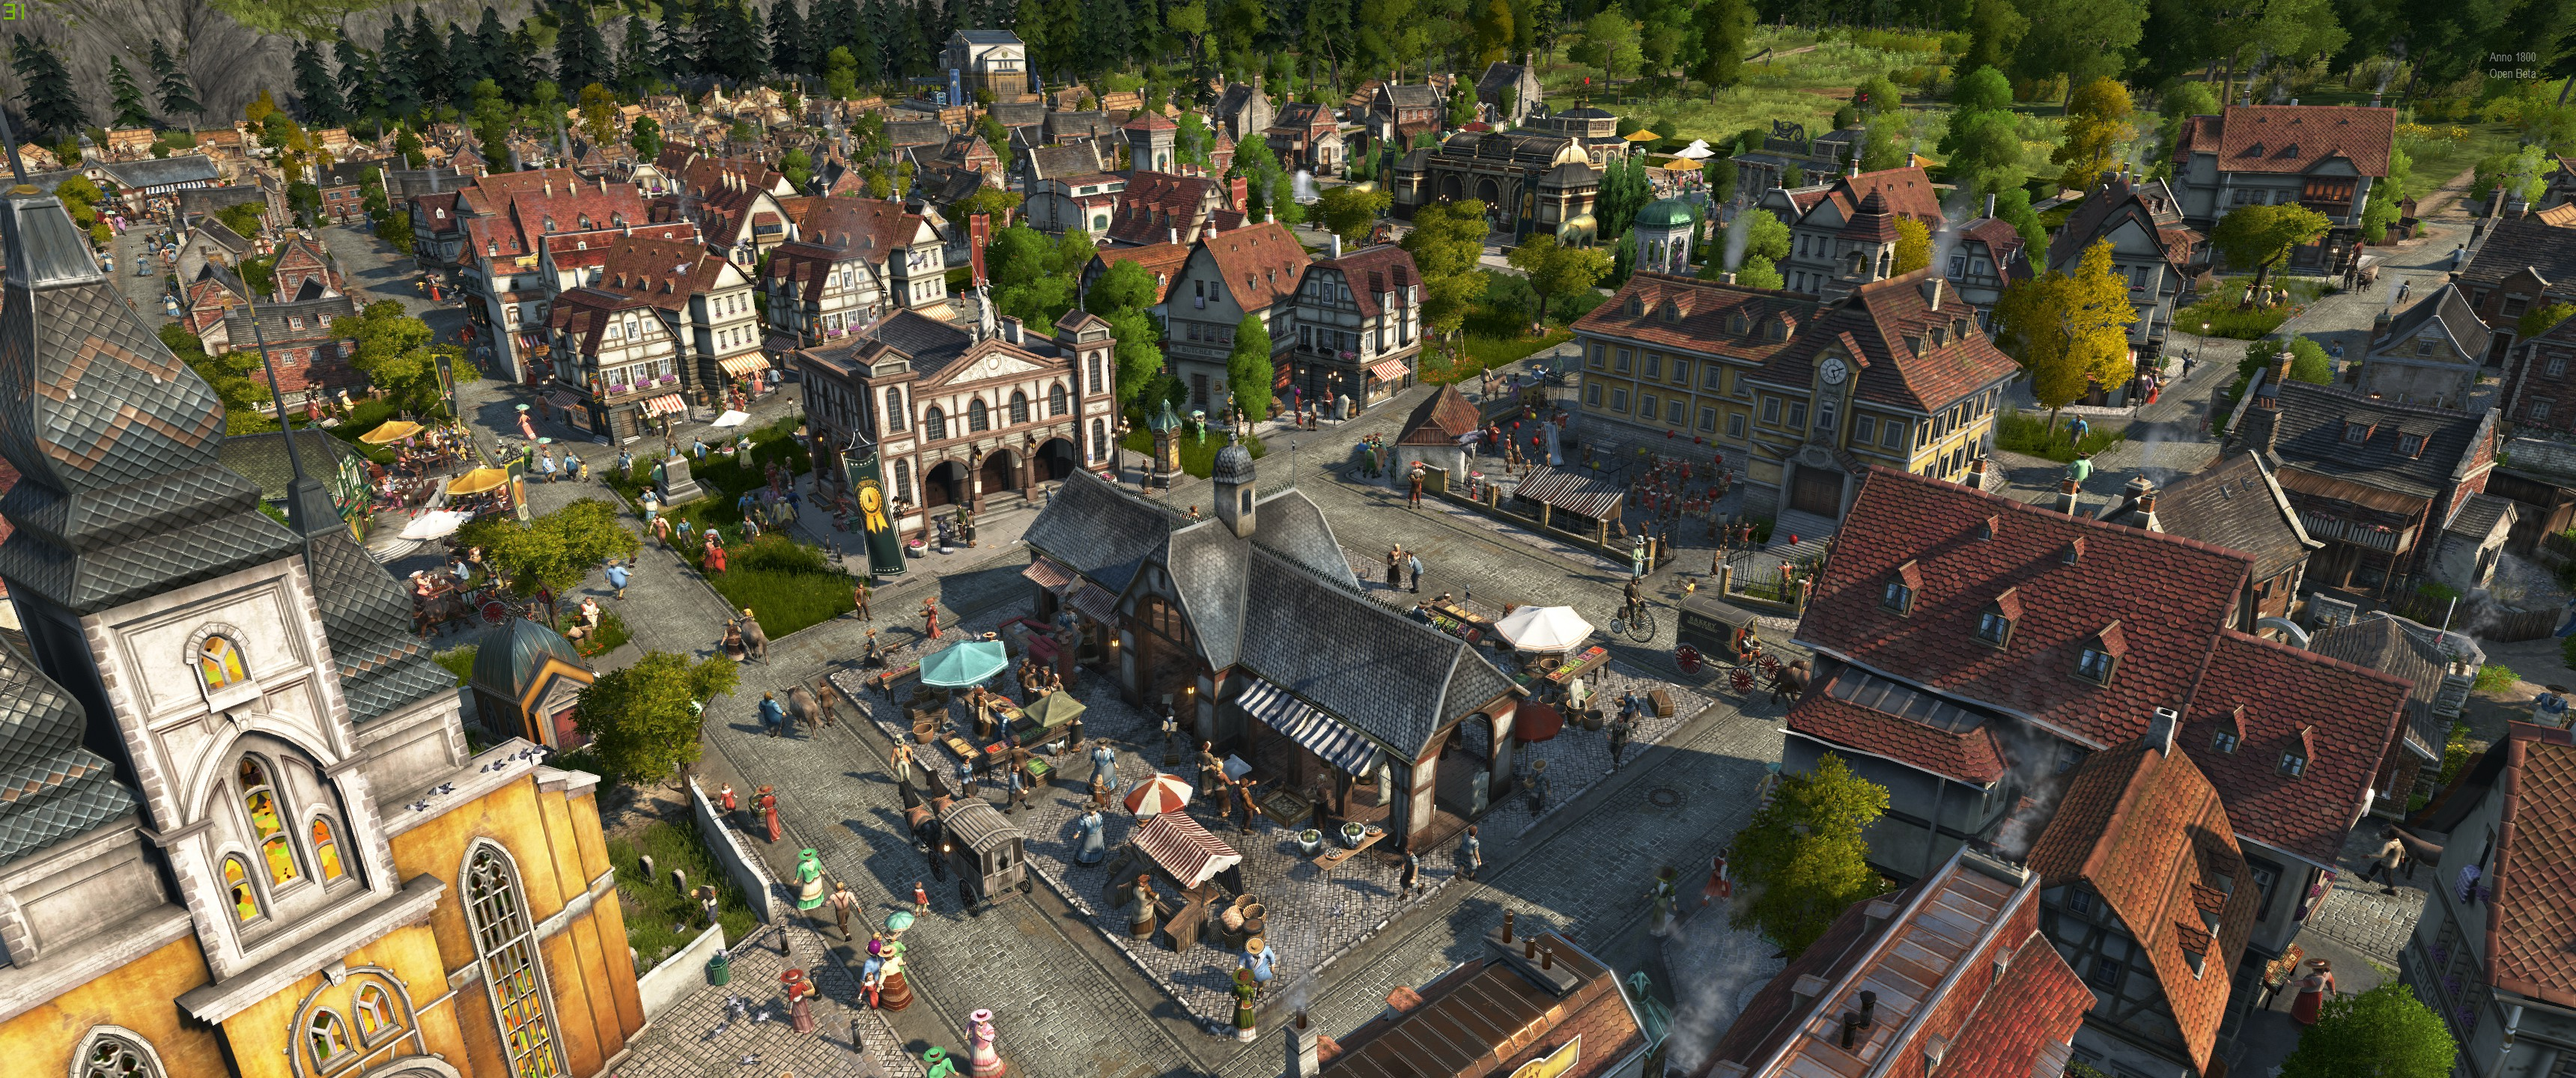 Anno-1800-Open-Beta2019-4-13-5-11-21